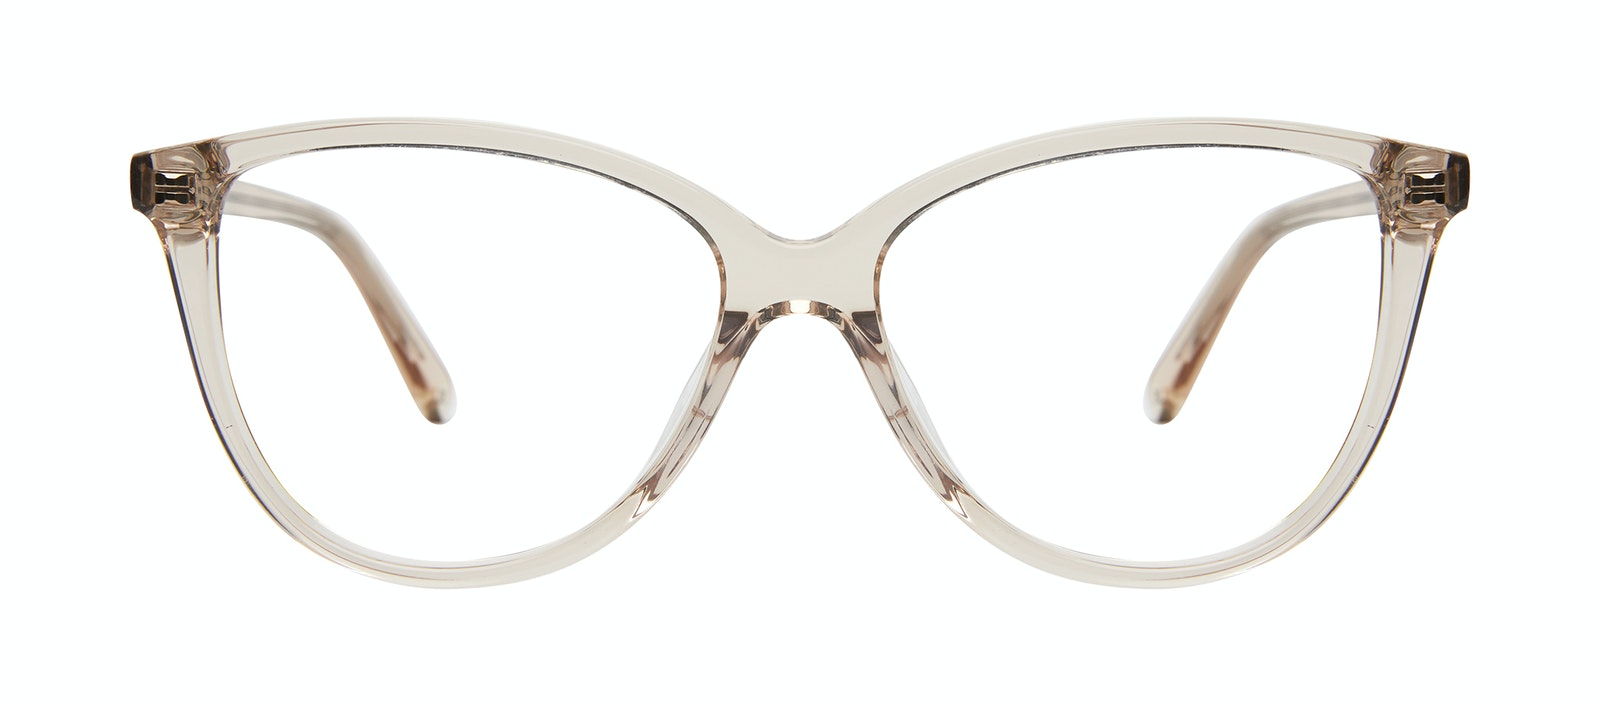 Affordable Fashion Glasses Cat Eye Eyeglasses Women Tailor Blond Front